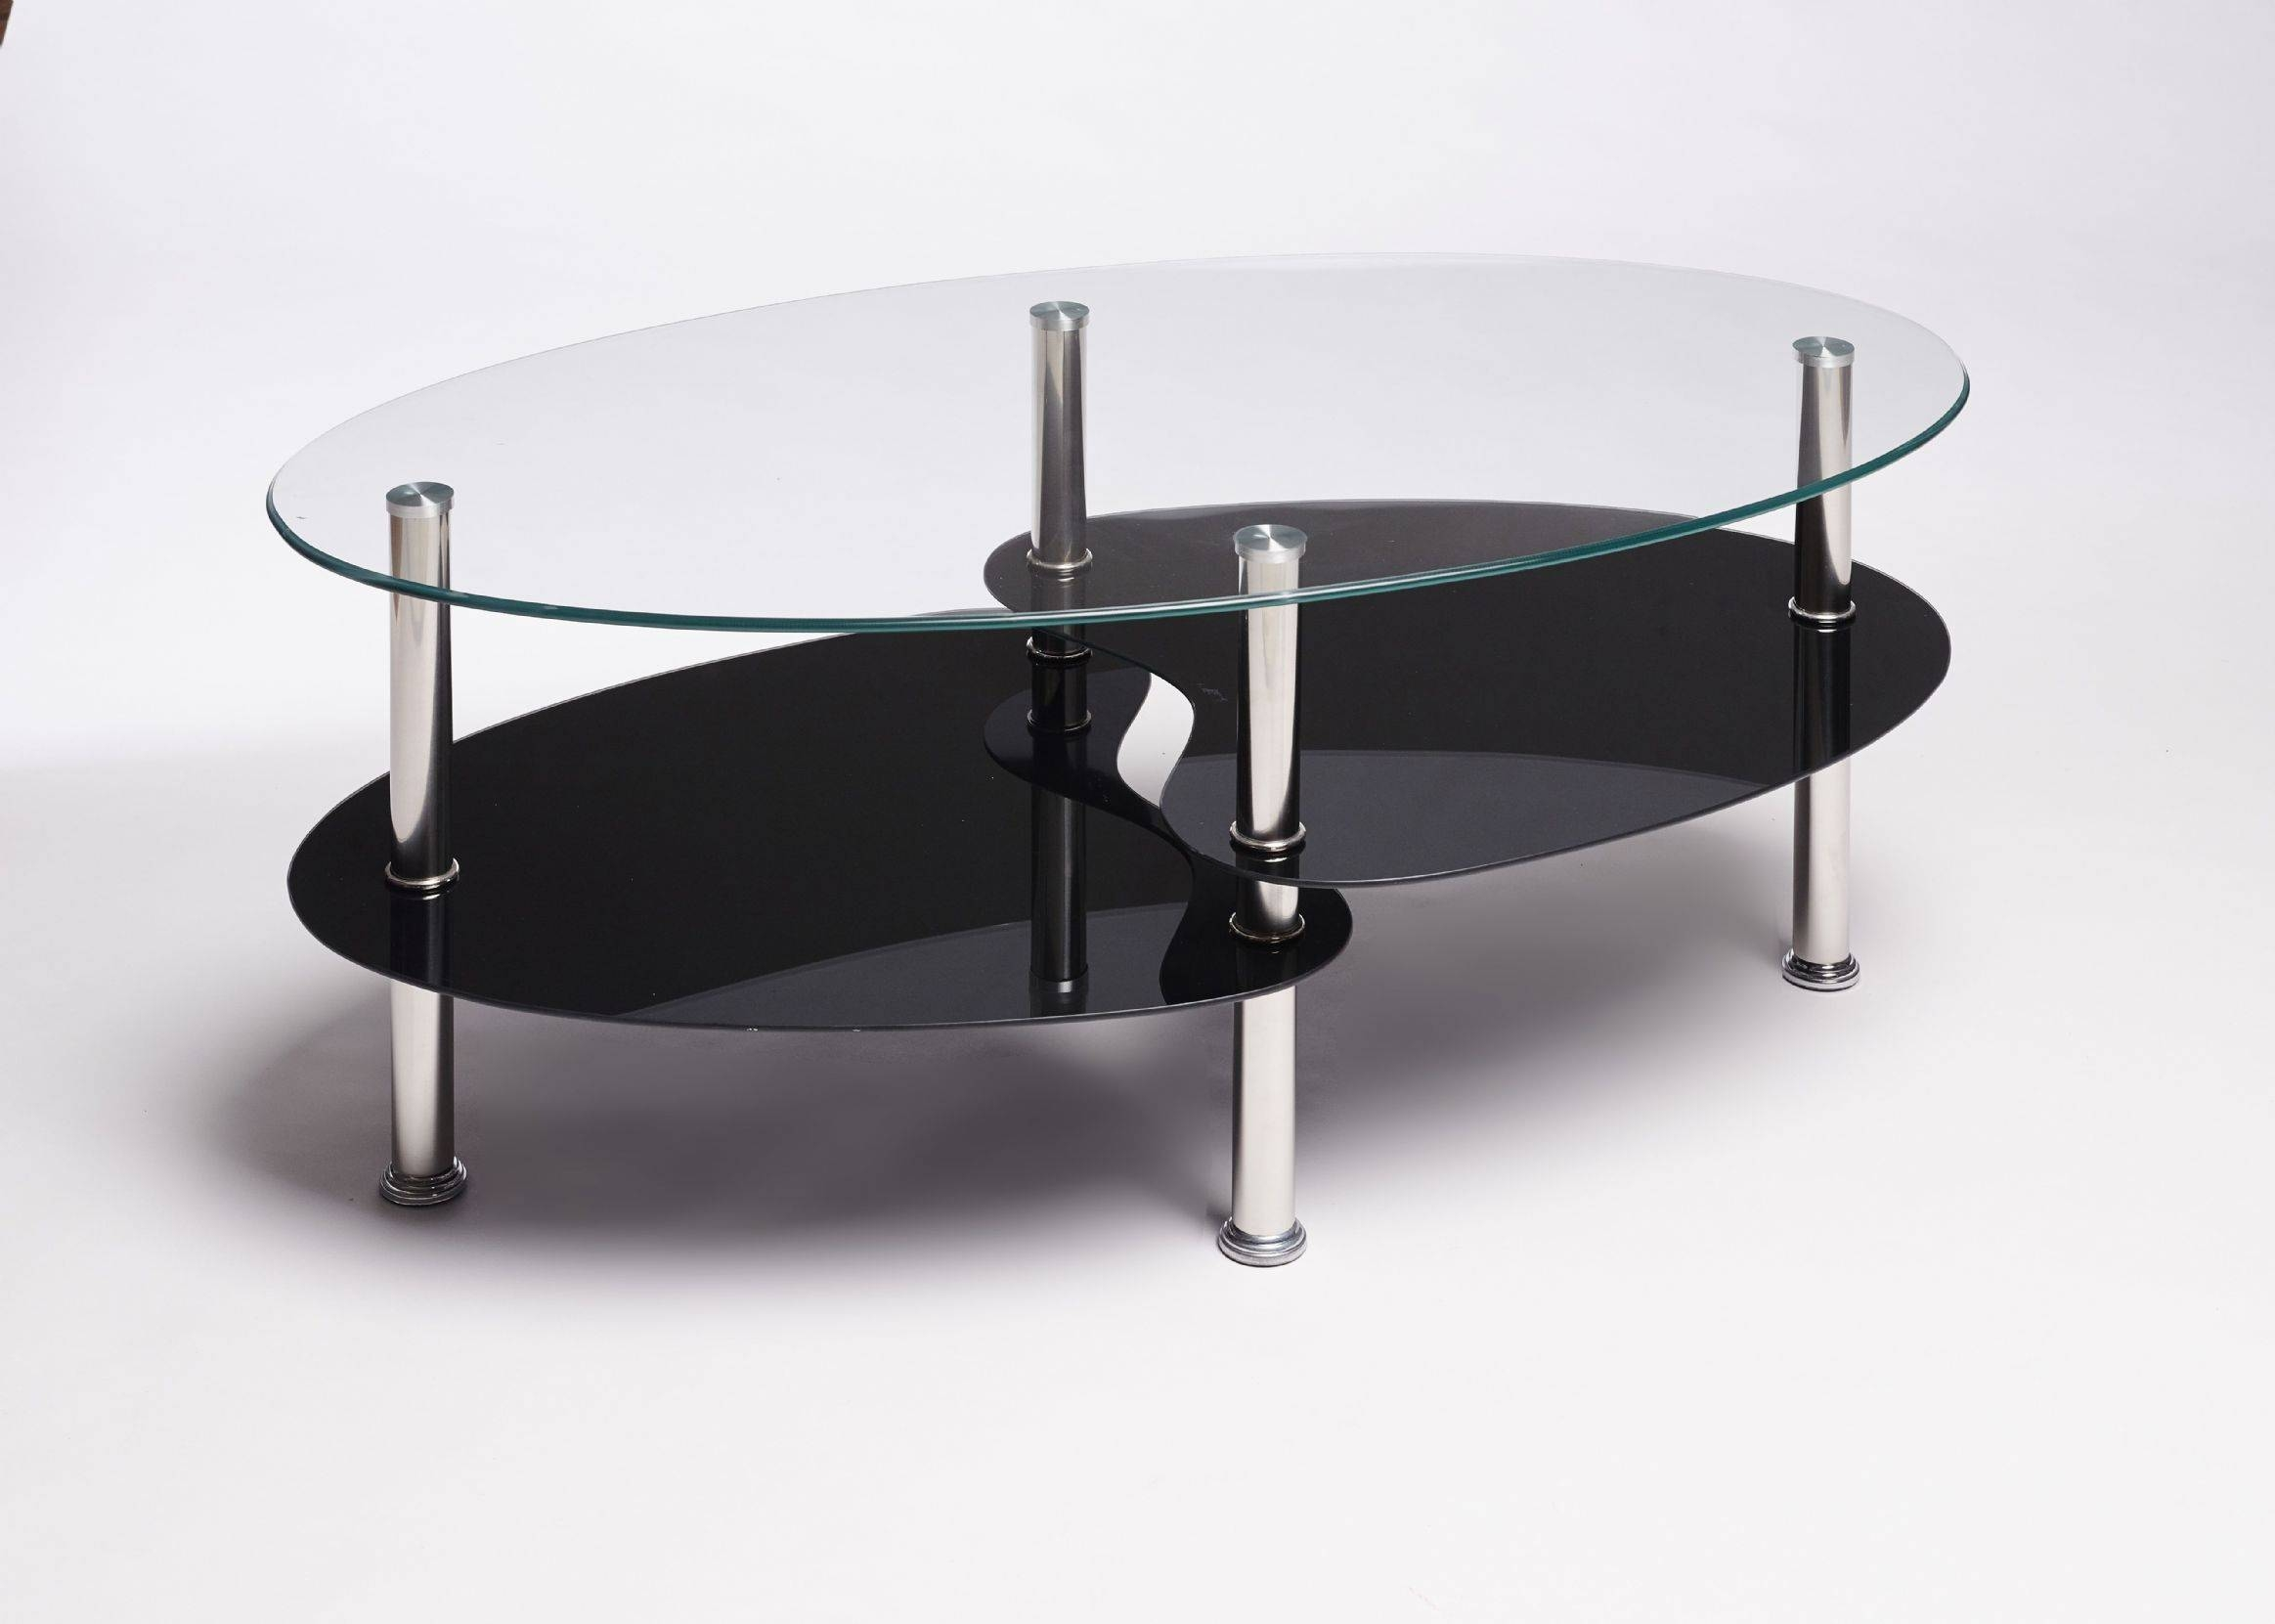 Furniture: Oval Glass Top Coffee Table | Oval Coffee Table Glass Pertaining To Oval Glass Coffee Tables (View 20 of 30)